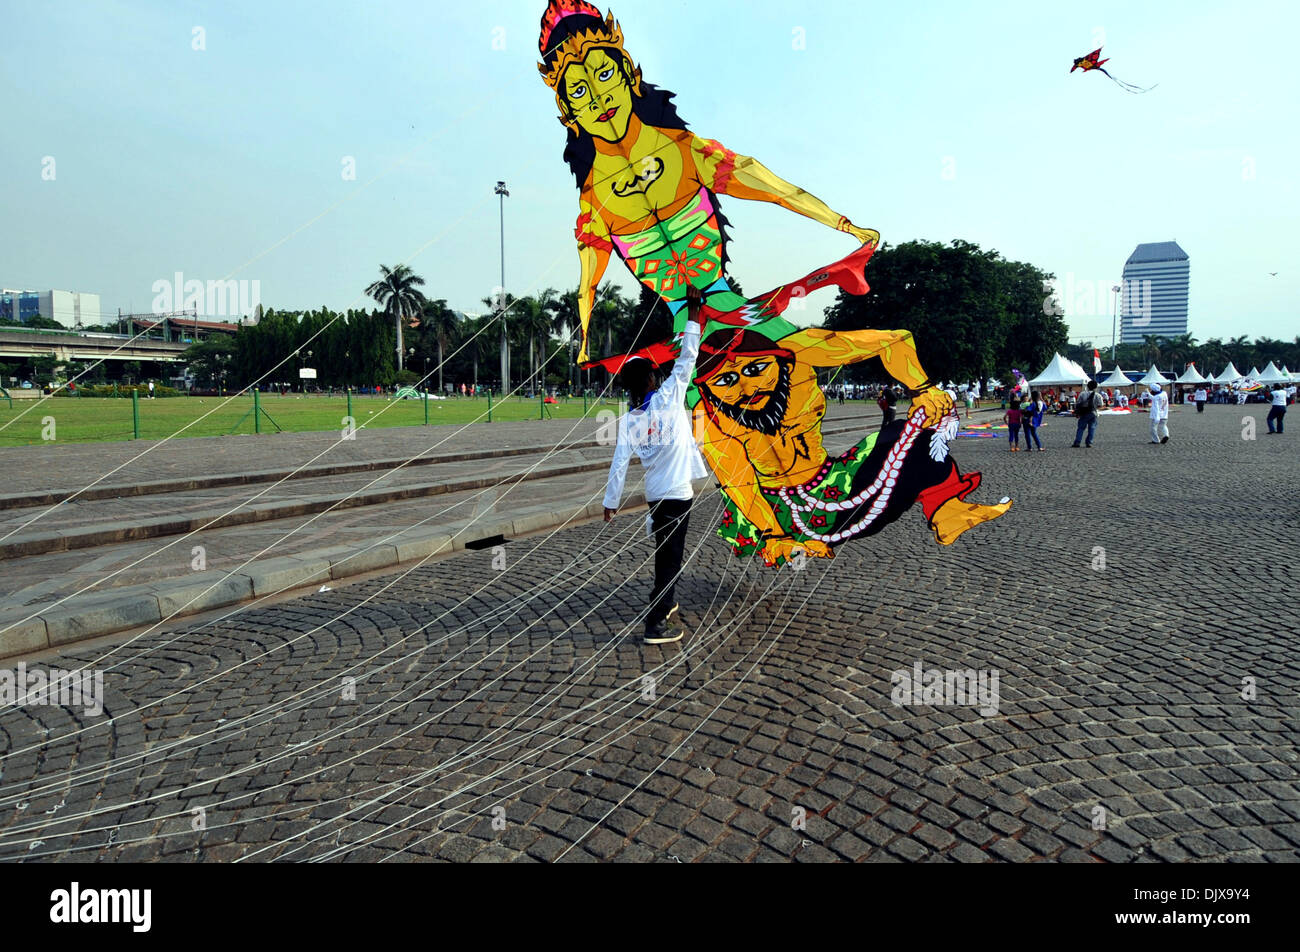 Jakarta, Indonesia. 1st Dec, 2013. A participant flies a kite during the Jakarta International Kite Festival 2013 in Jakarta, Indonesia, Nov. 30, 2013. The two-day festival opened on Saturday, with the participation of 18 countries and regions. Credit:  Agung Kuncahya B./Xinhua/Alamy Live News Stock Photo